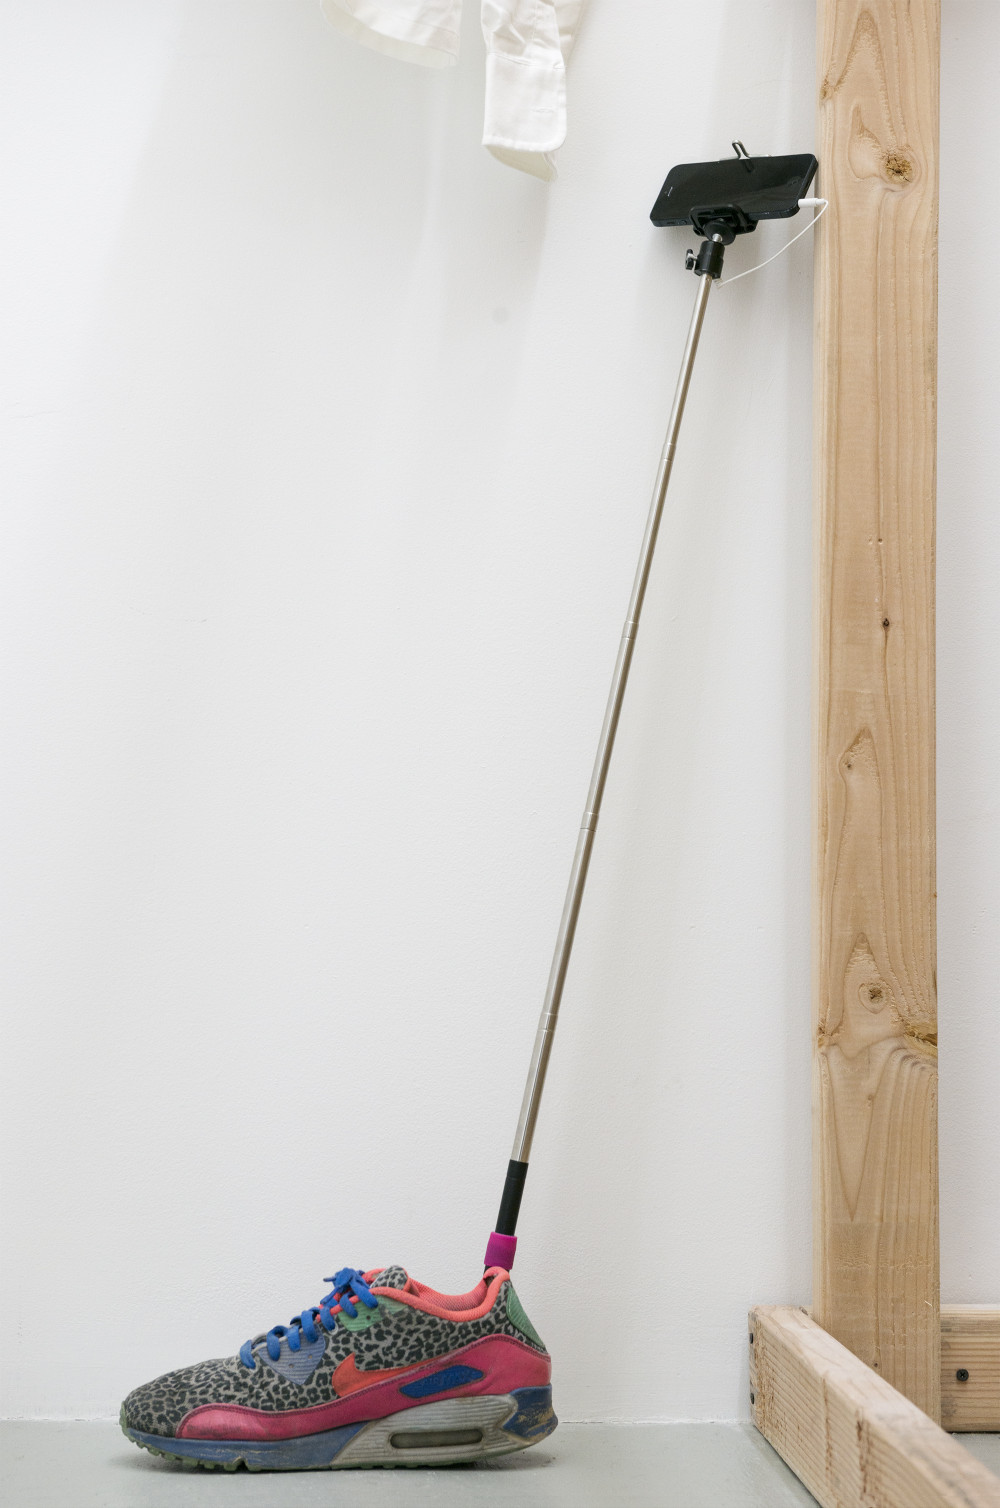 Yefu Liu Floating point (Detail), 2015 Single channel HD video, 9m24s, running shoe, selfie stick, iPhone